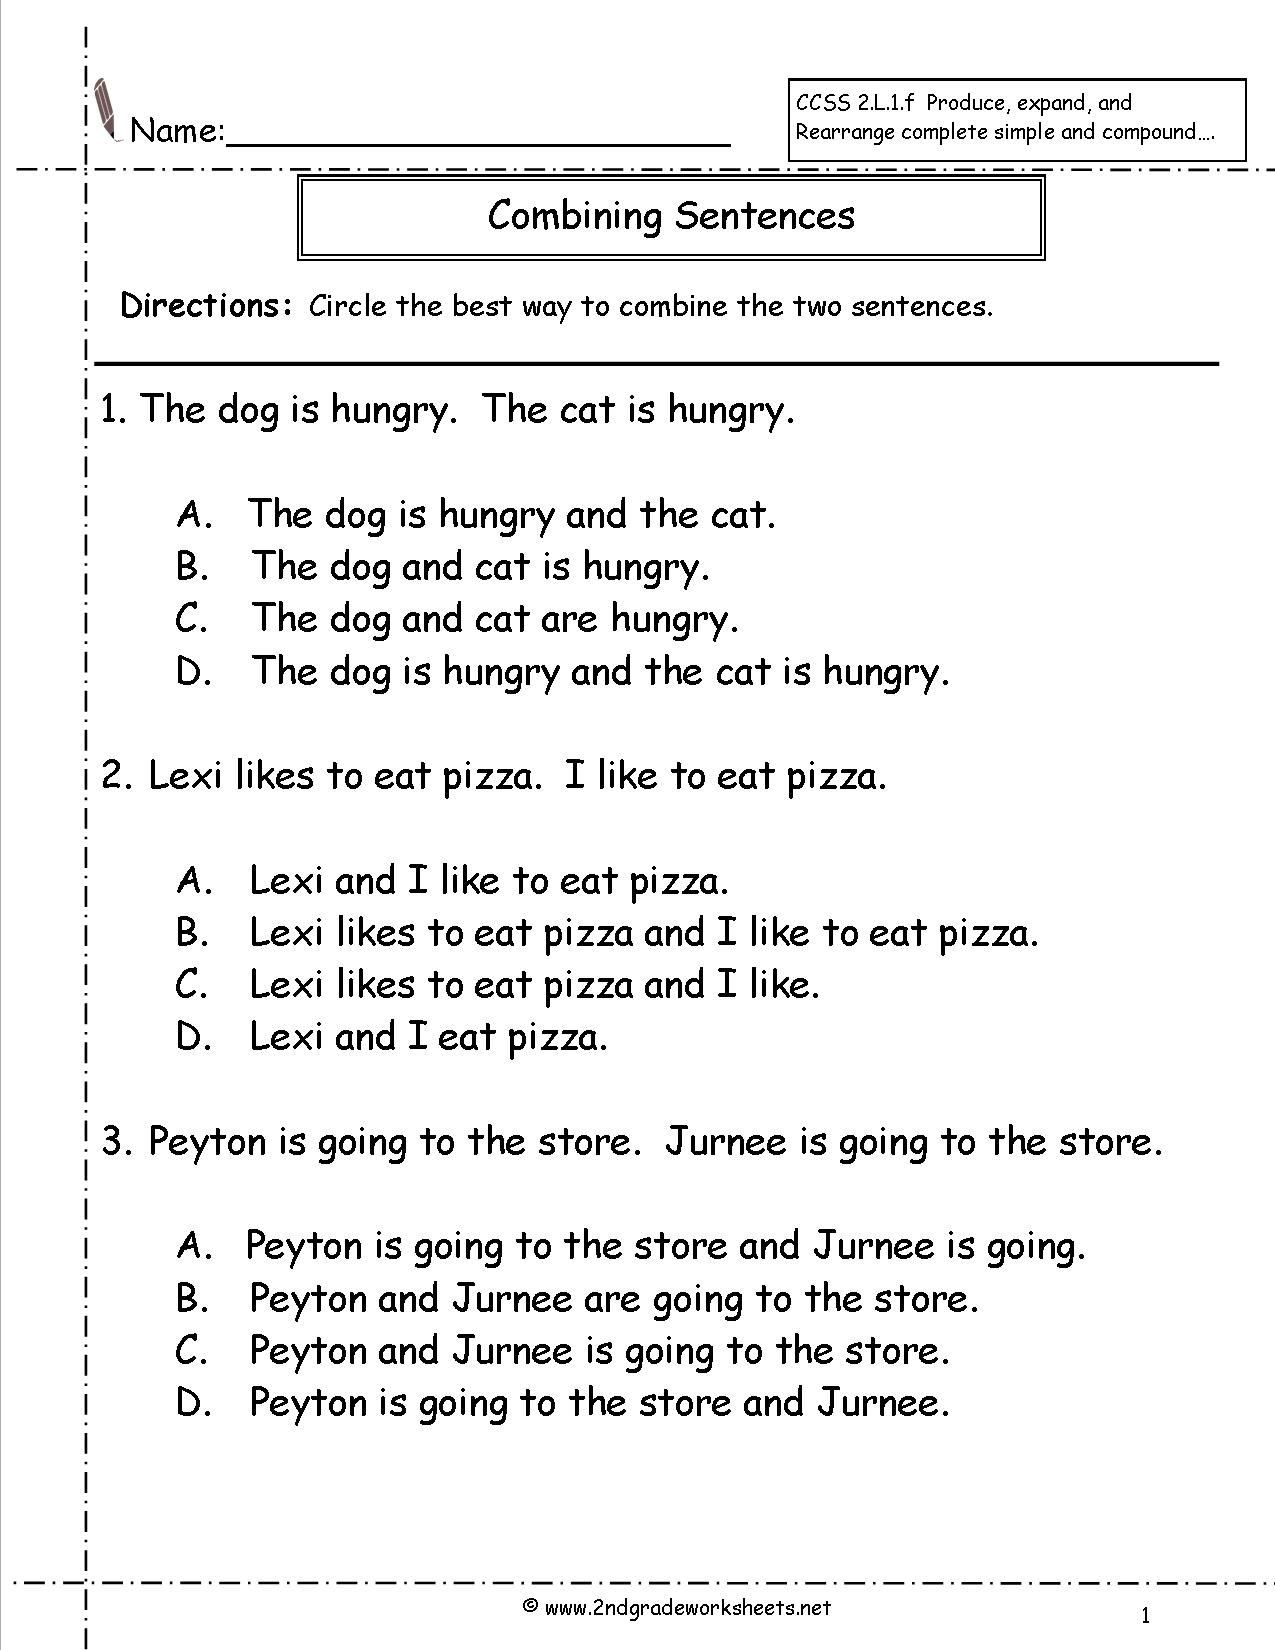 Writing Sentences Worksheets 3rd Grade Bining Sentences Worksheet